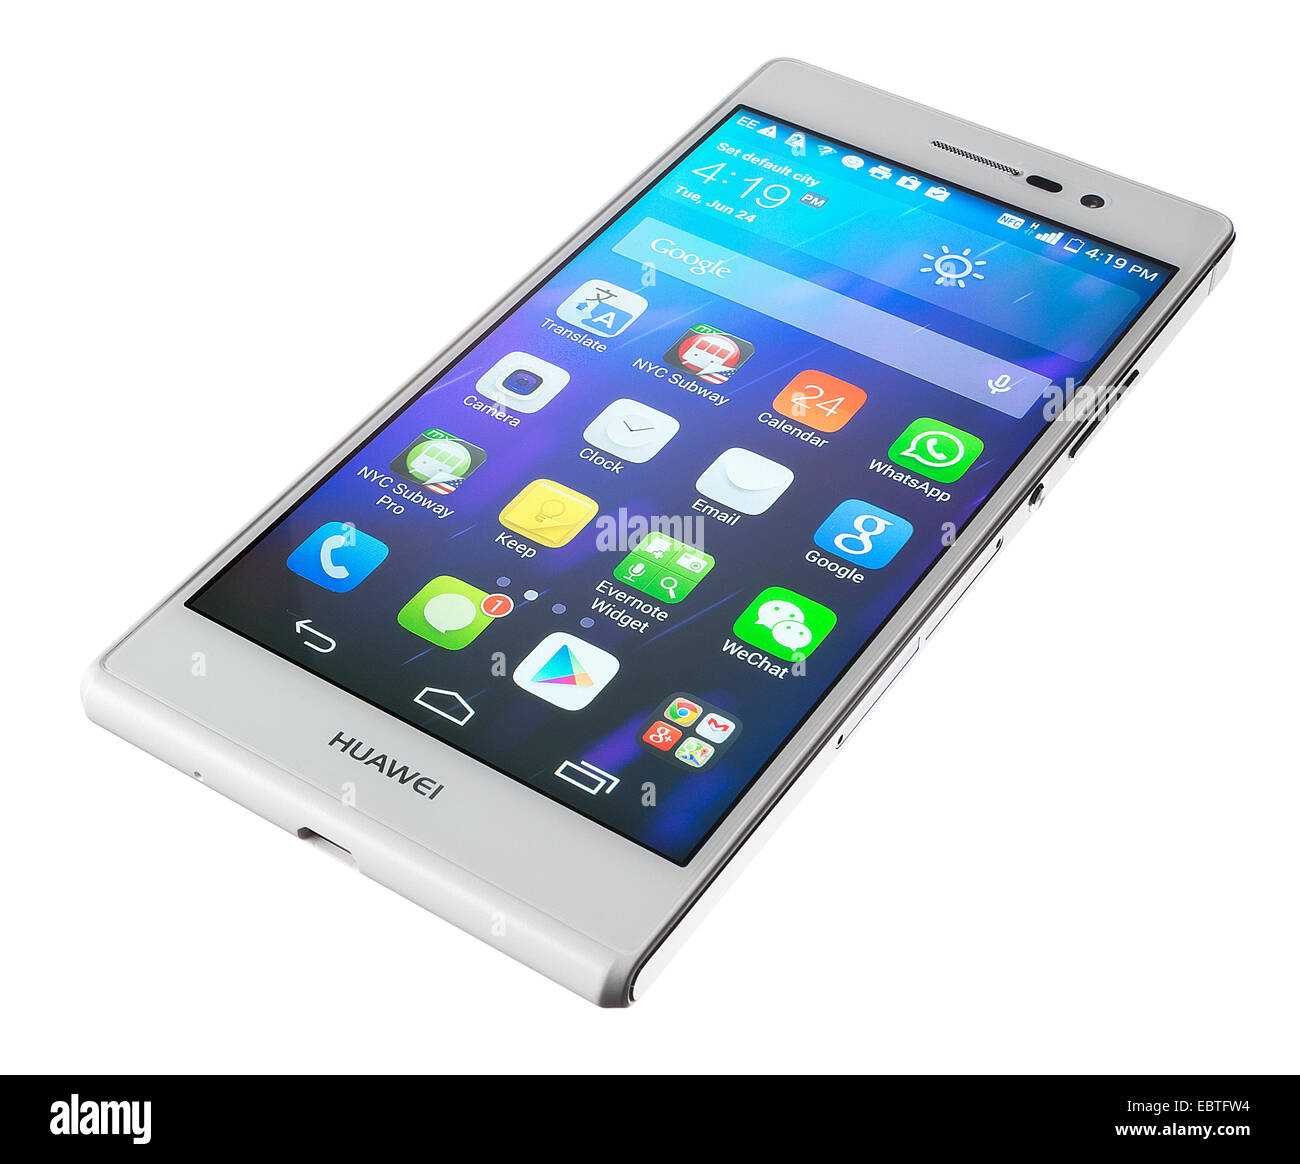 Huawei Ascend P7 Android smartphone - Stock Image